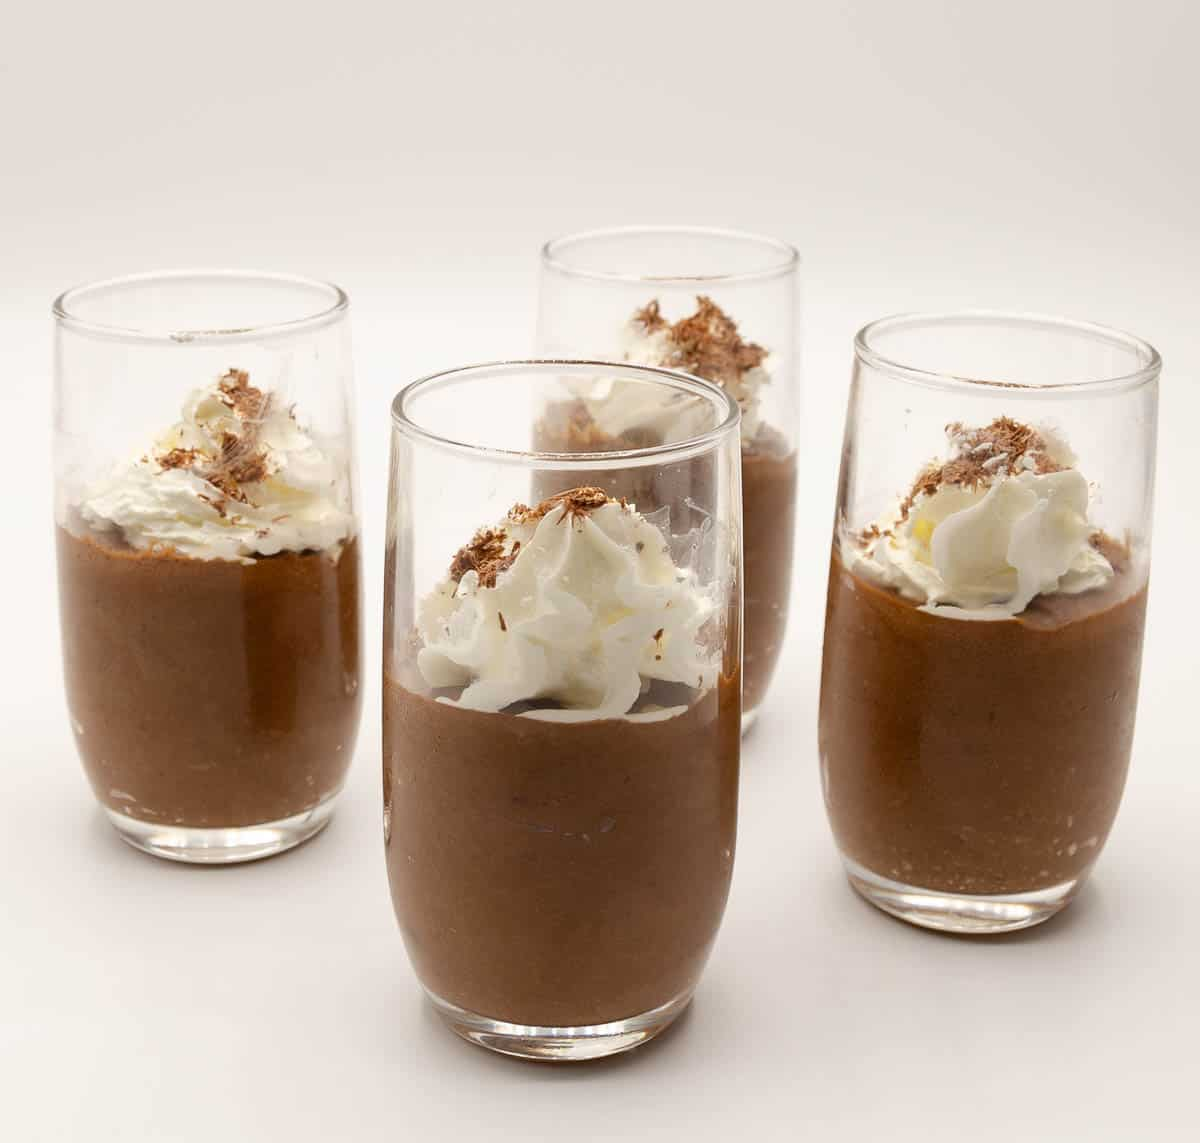 4 glasses of chocolate mousse with whipped cream